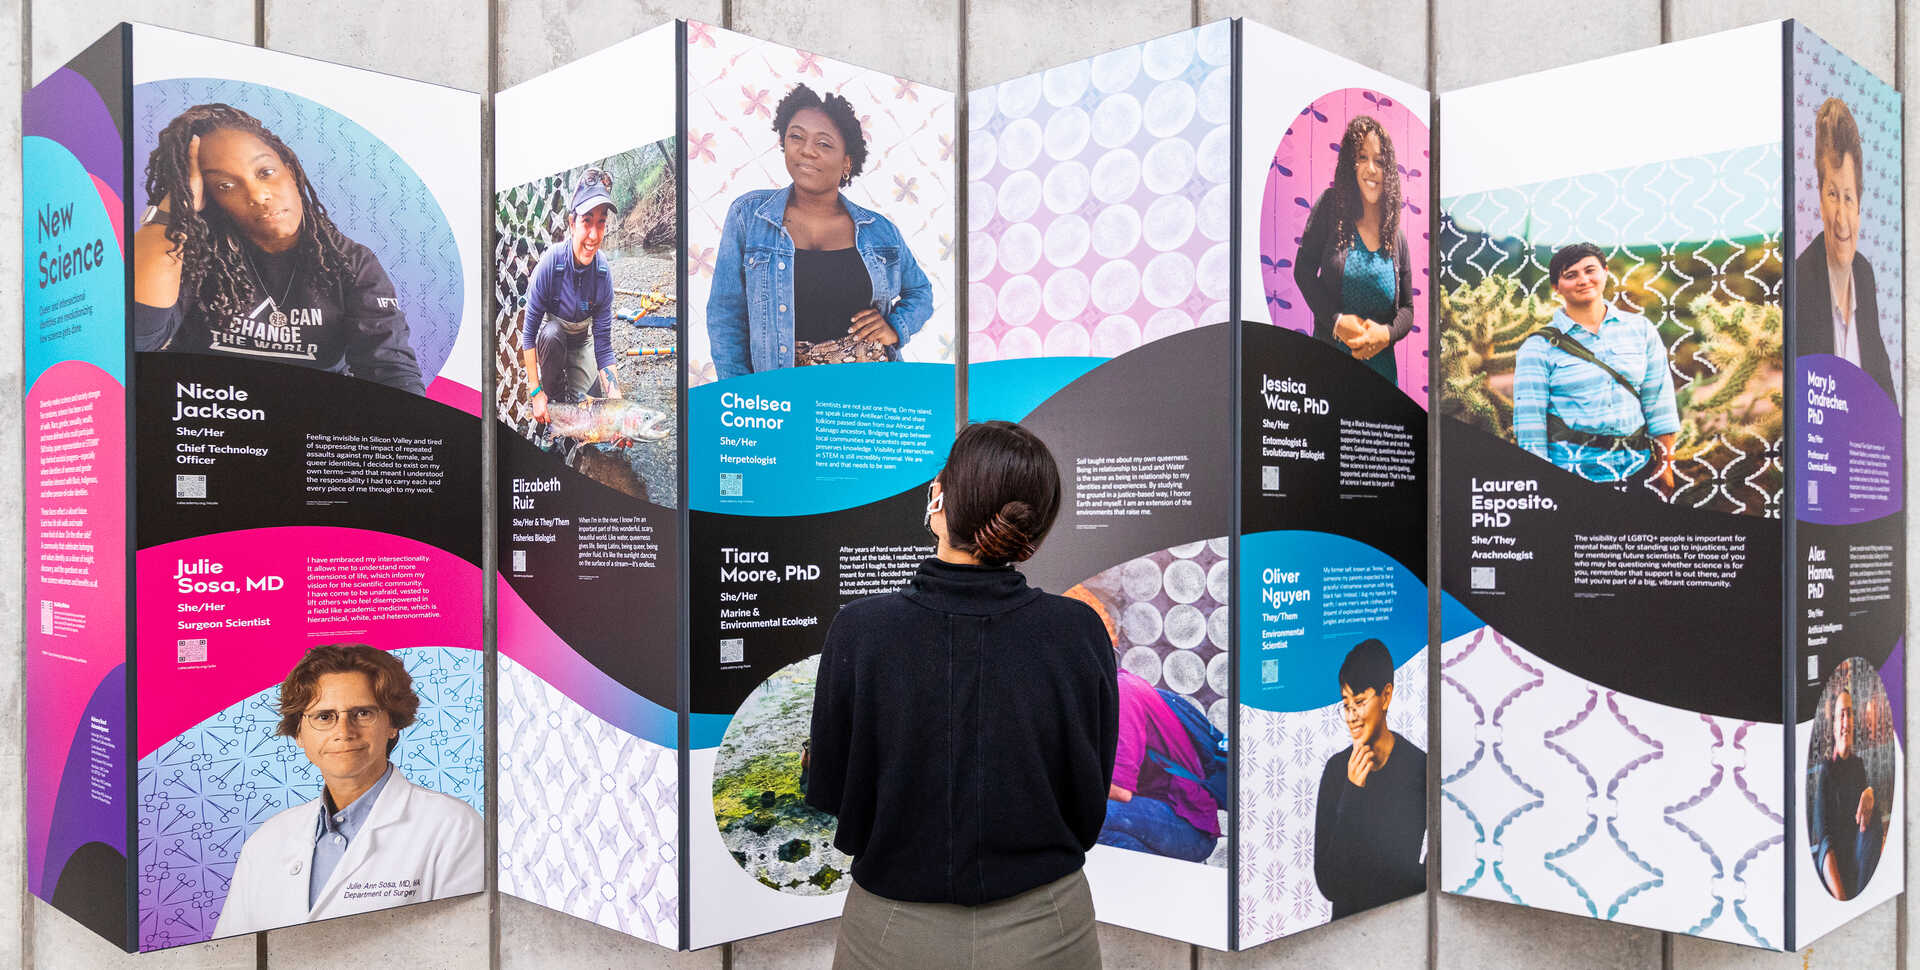 Guest looks at New Science exhibit panel featuring portraits of LGBTQ+ scientists